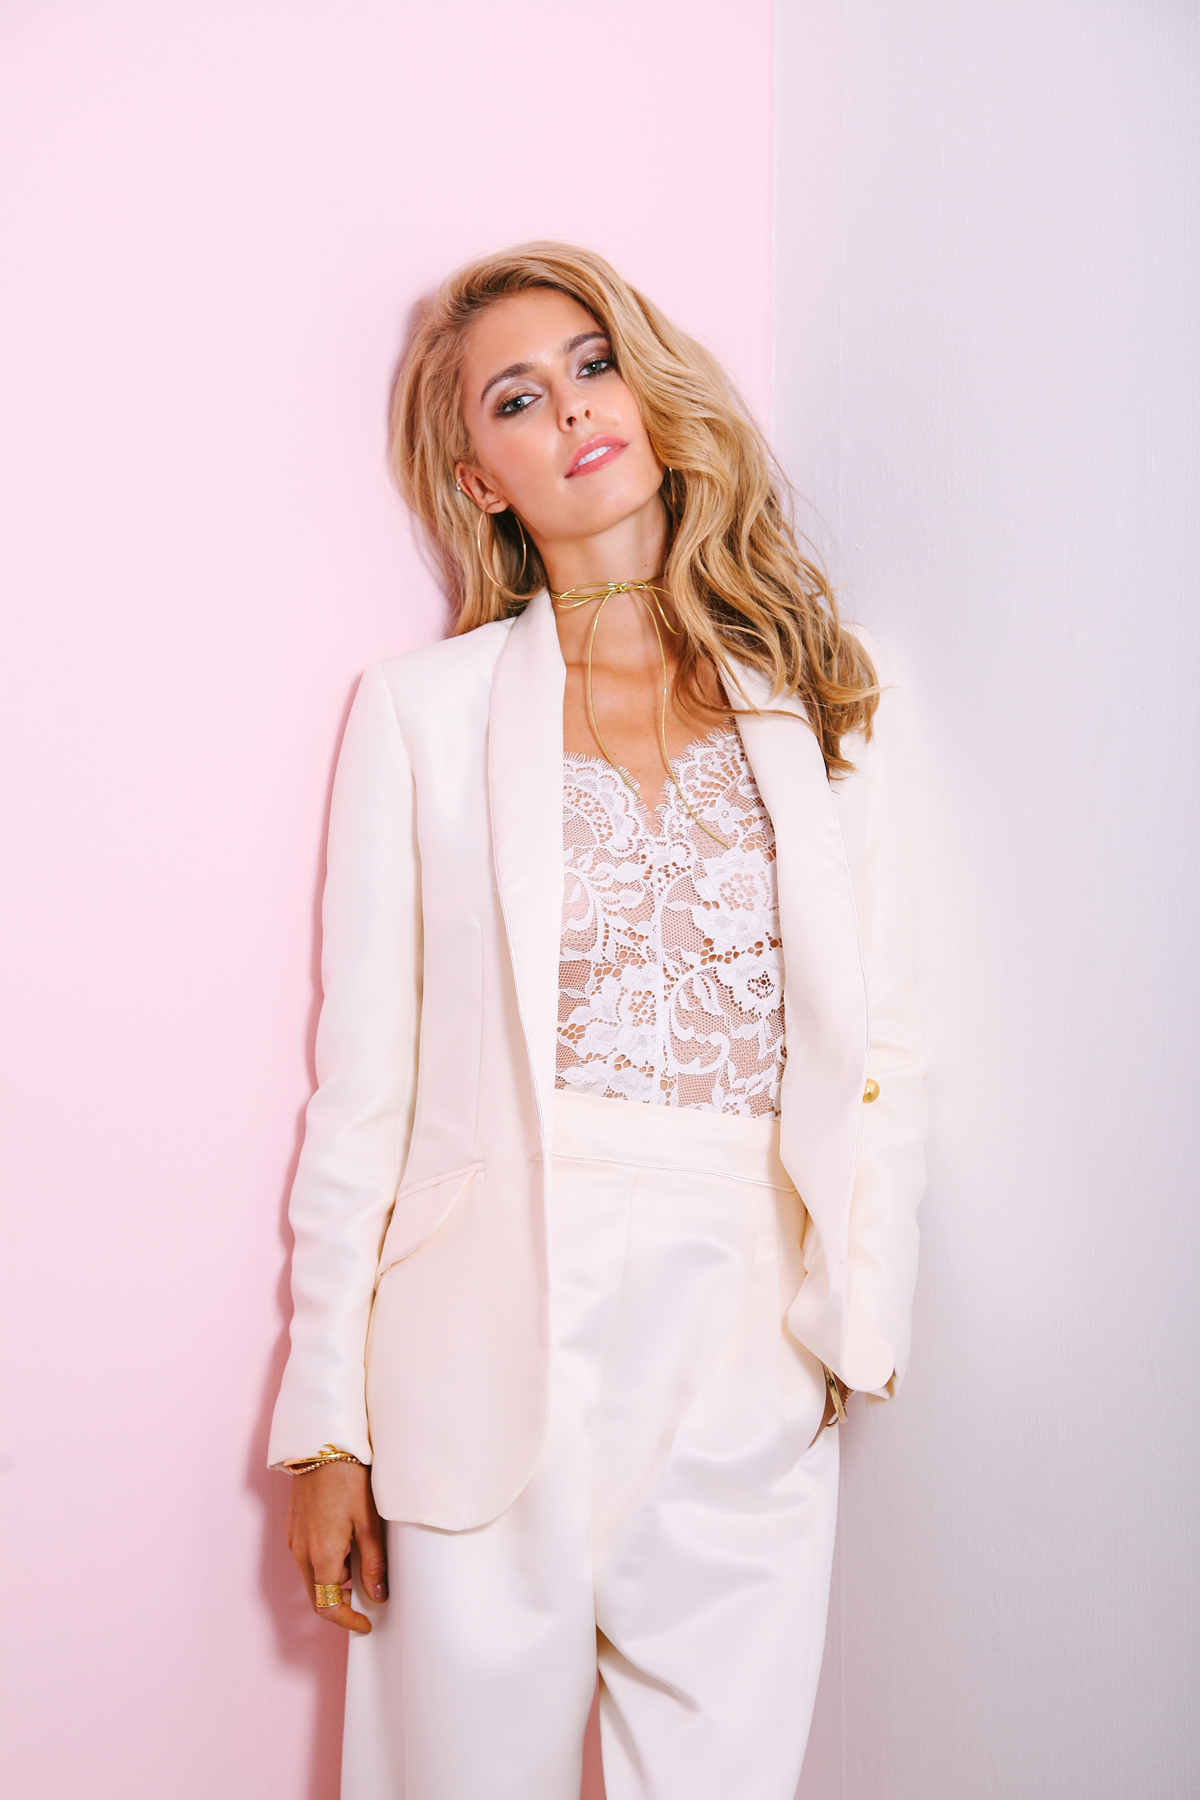 Belle & Bunty's 1970's New York Disco Inspired Bridal Collection: Young Hearts, Run Free